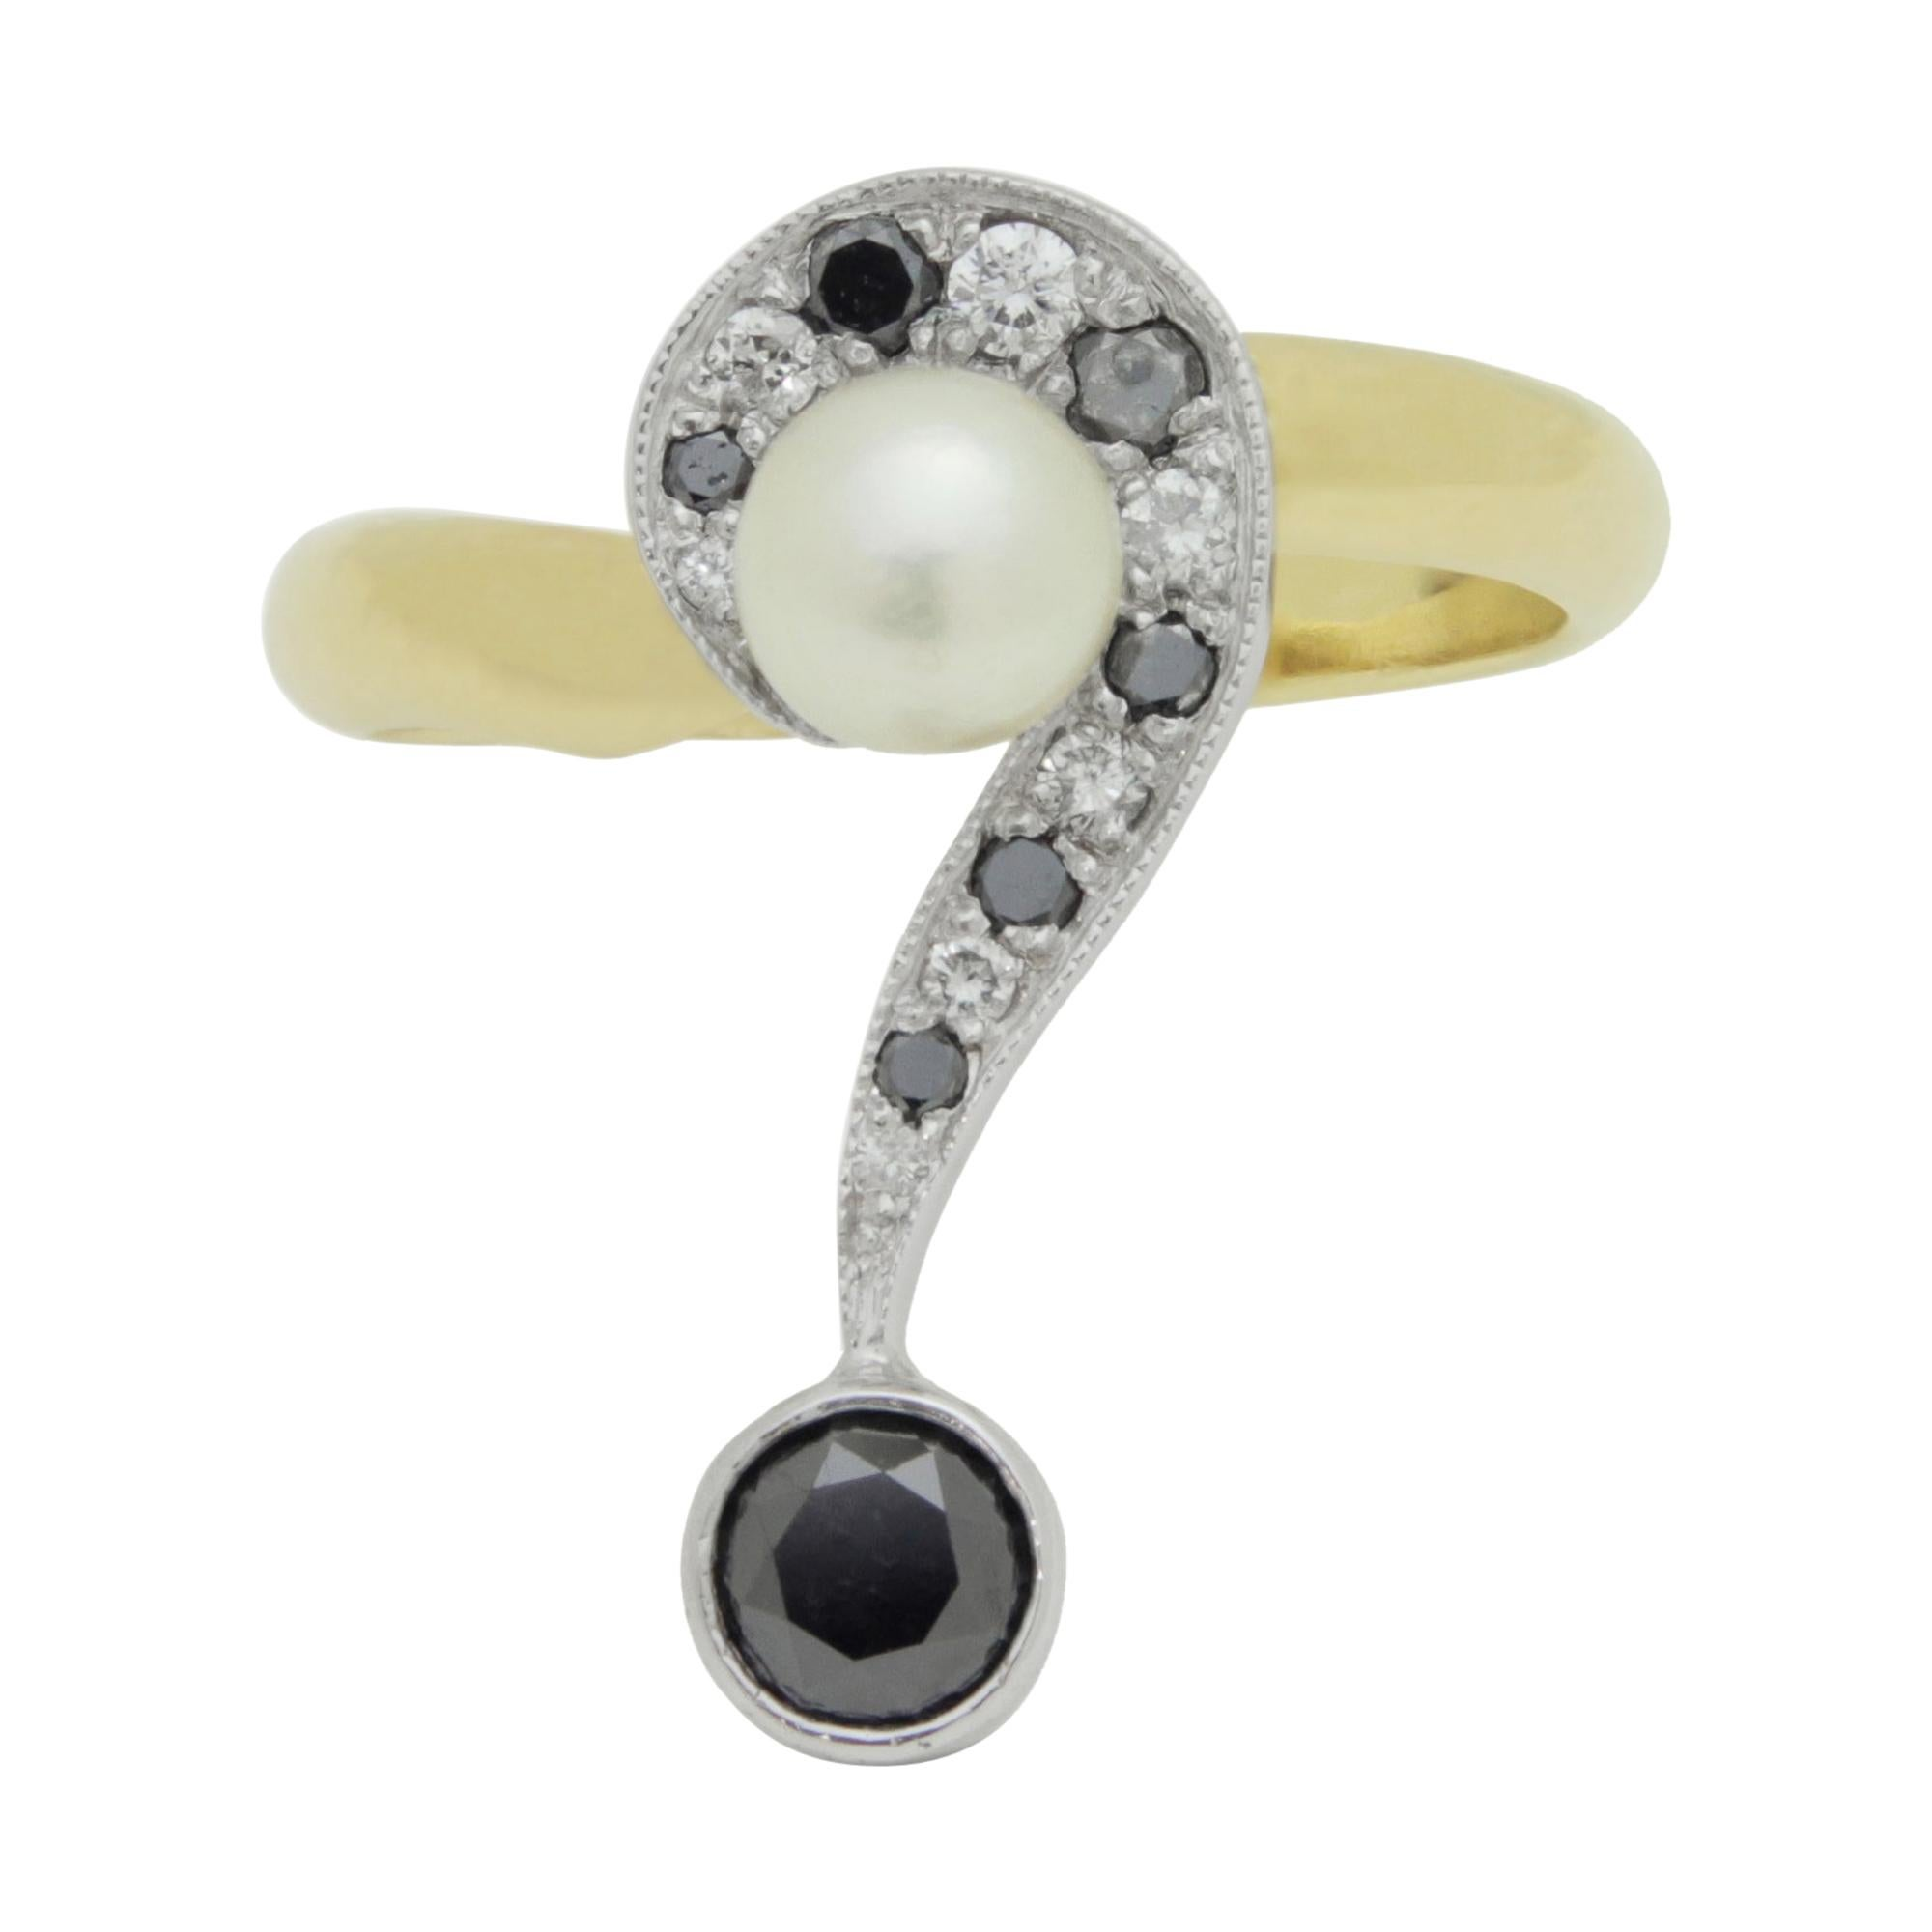 'Question Mark' Ring in 14 Karat Gold with Diamonds and a Pearl